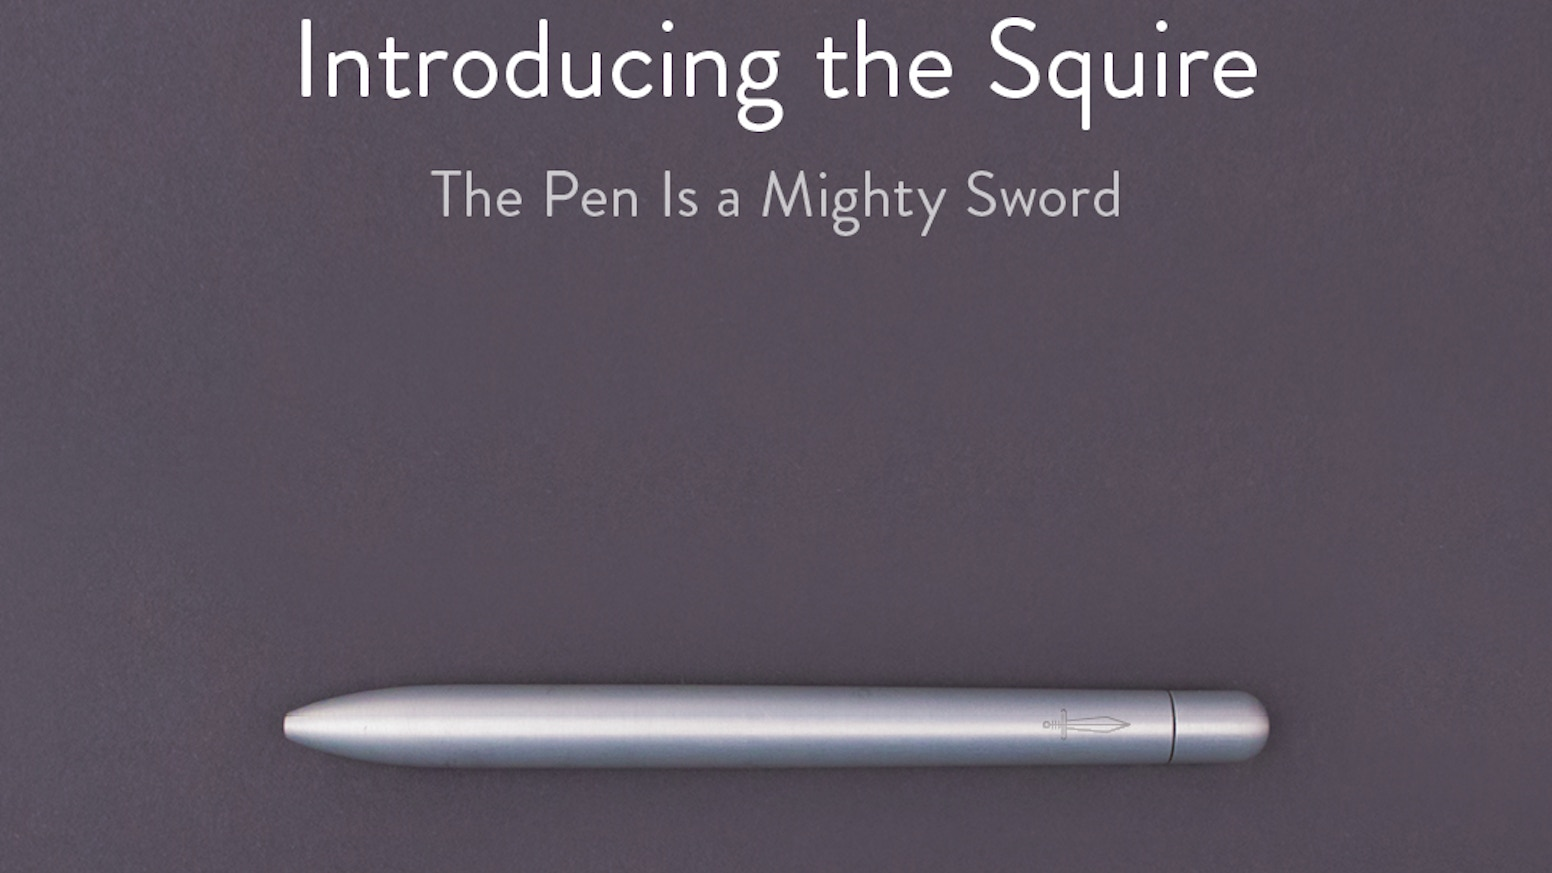 The Squire pen is designed with an underlying philosophy of simplicity, usefulness, and community.